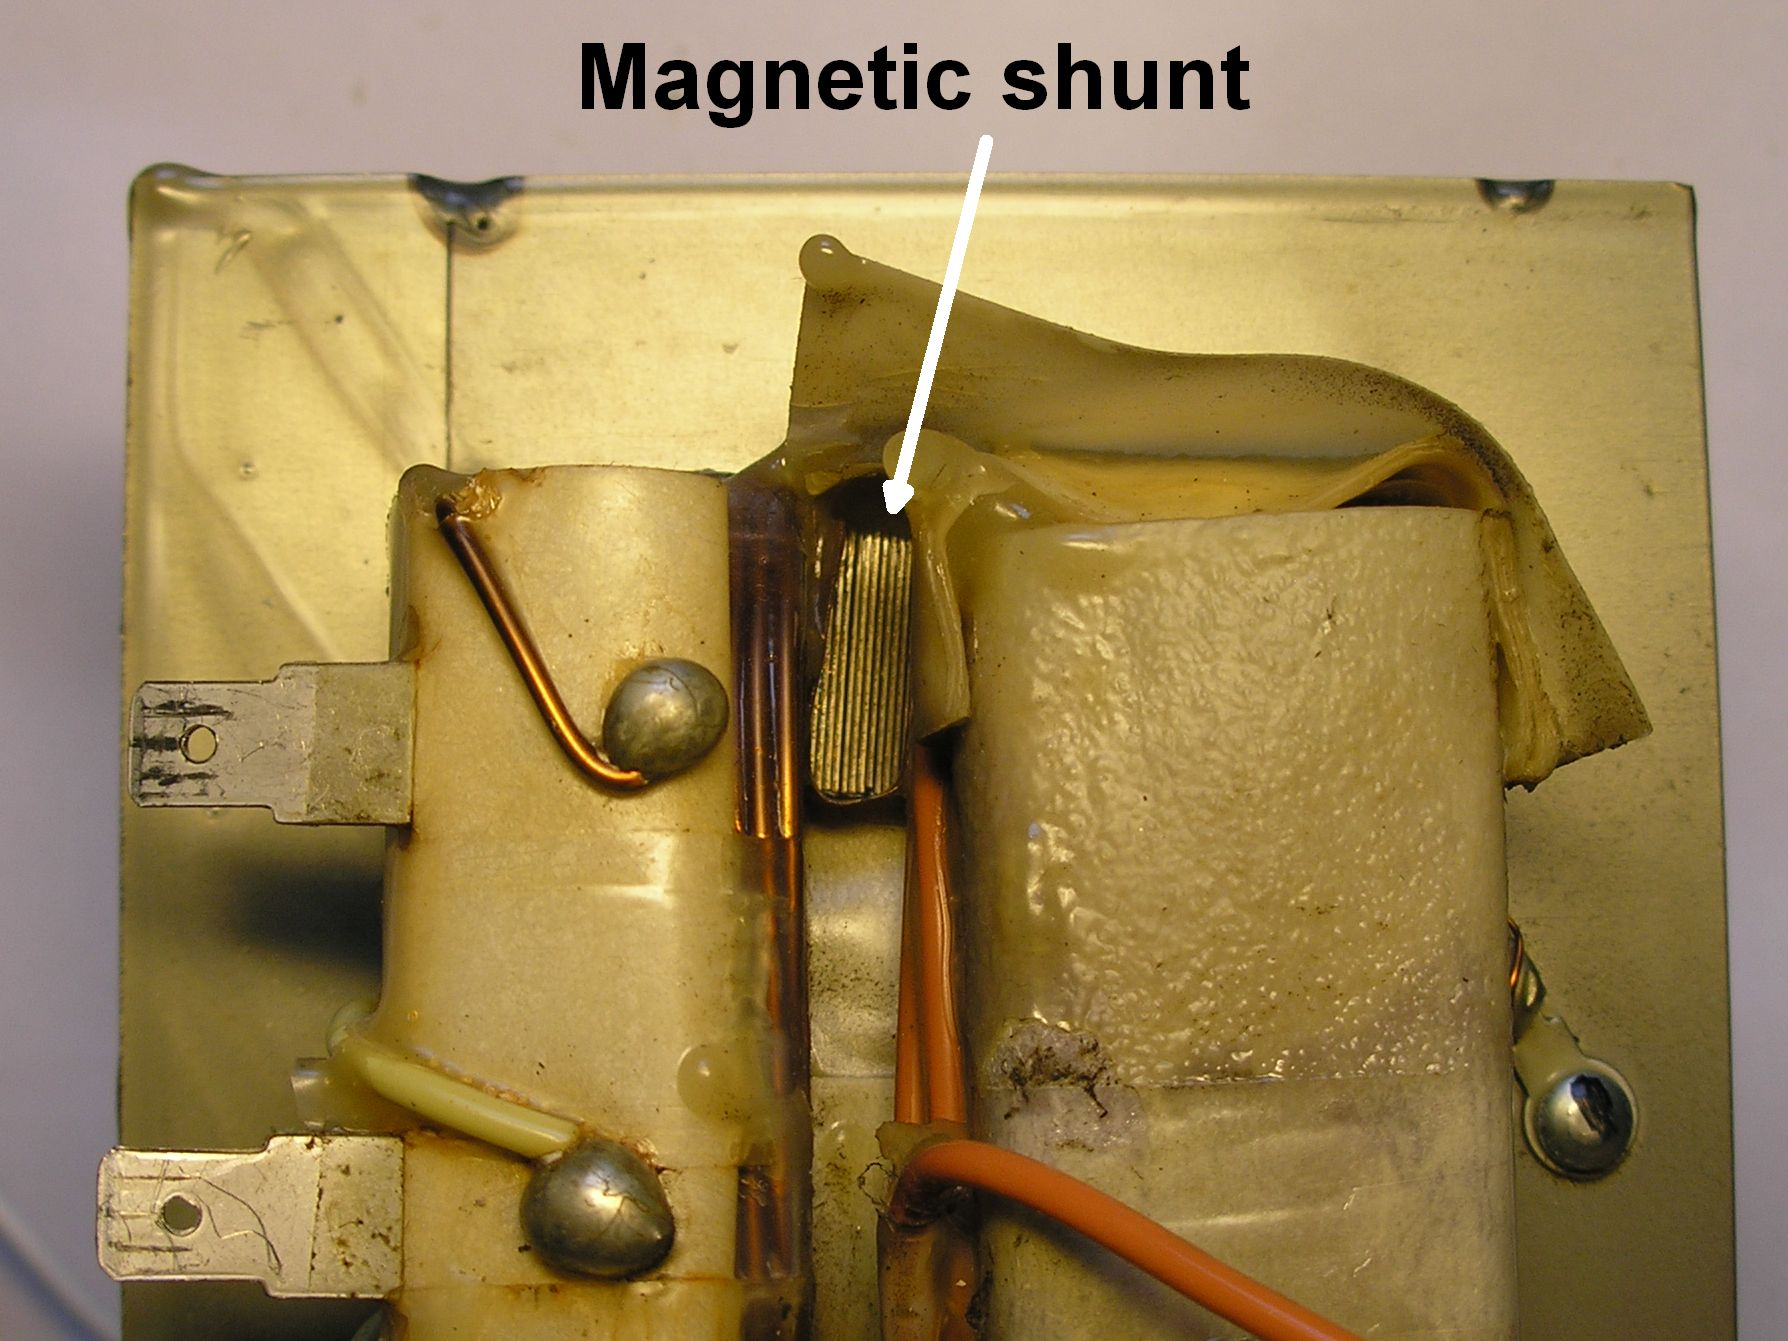 Remove the magnetic shunt